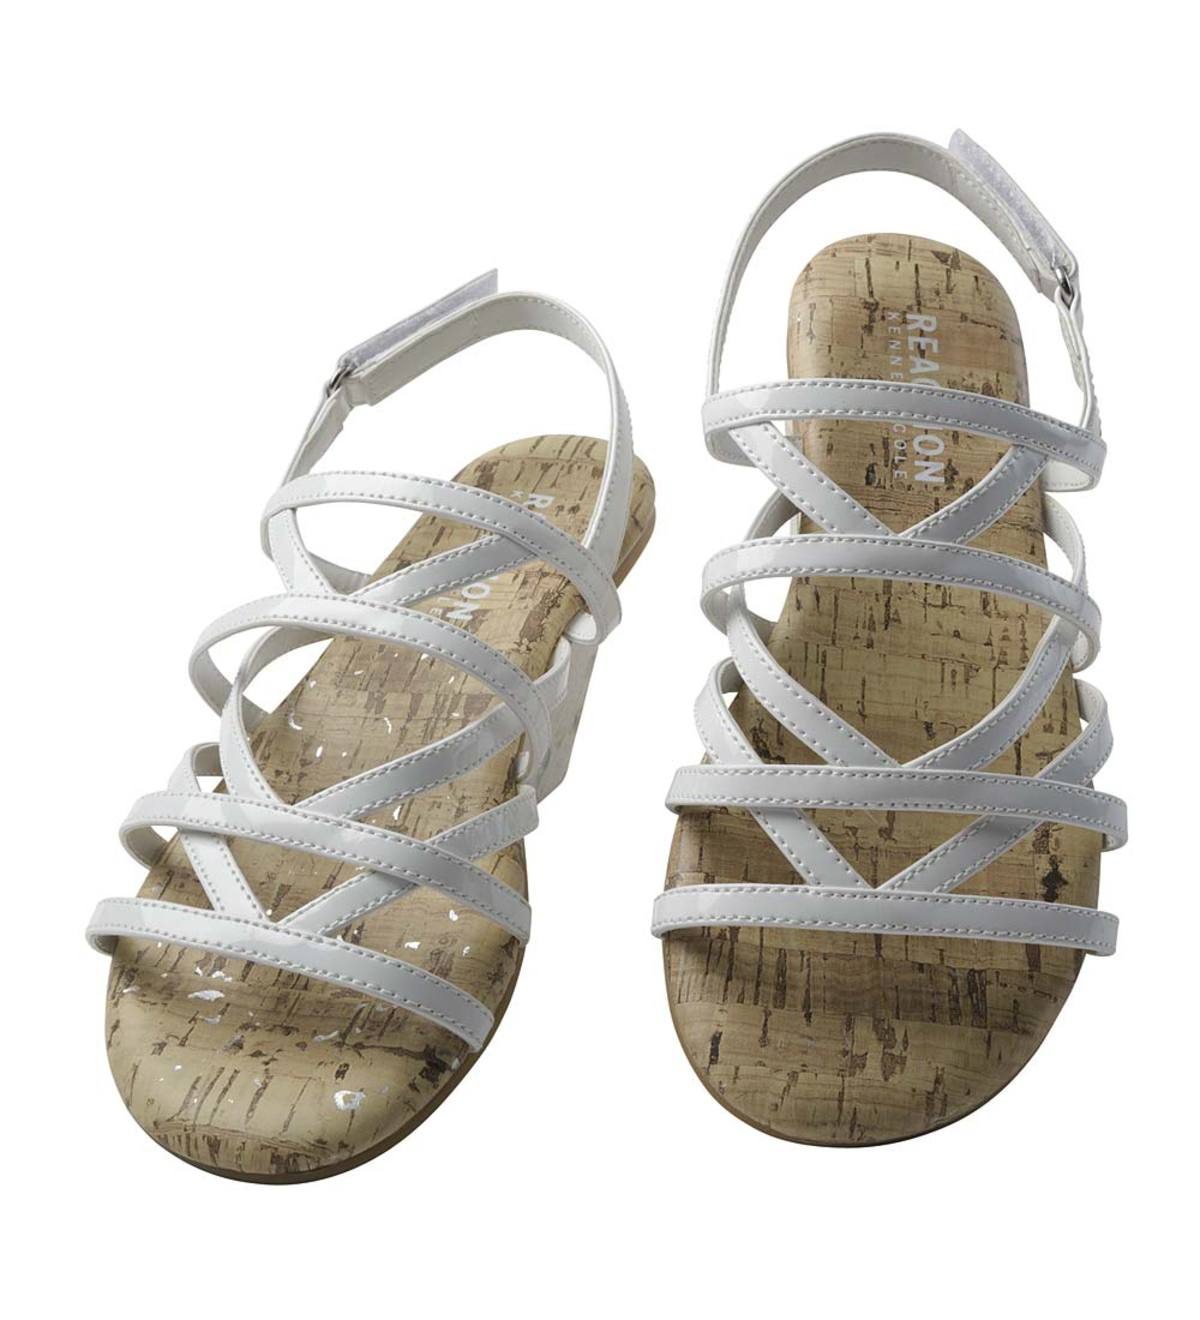 Patent Leather Sandal - White - Size 10